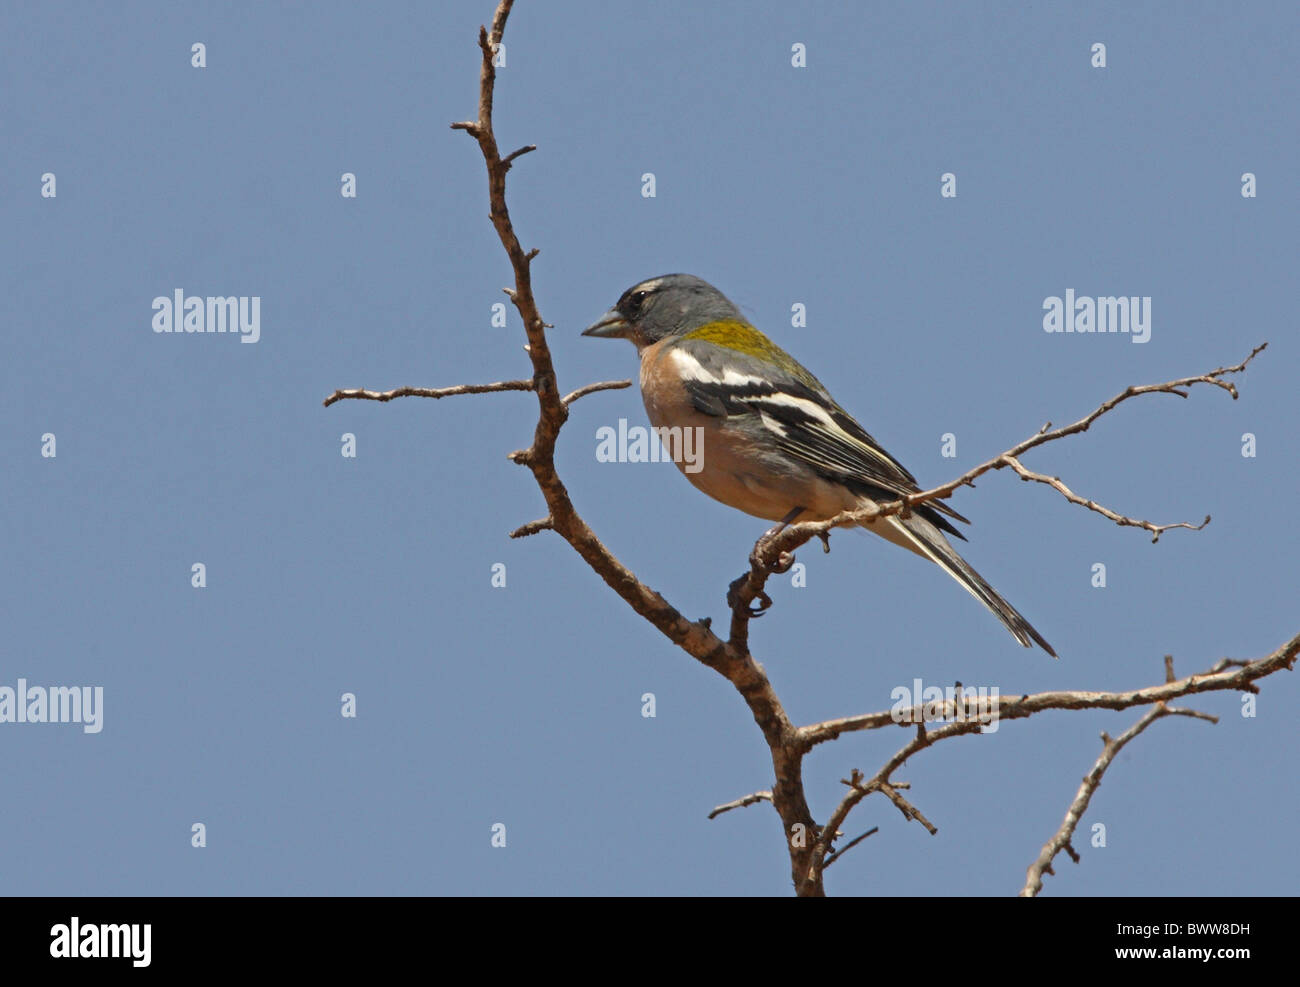 Chaffinch (Fringilla coelebs africana) North African subspecies, adult male, perched on twig, Morocco, may - Stock Image